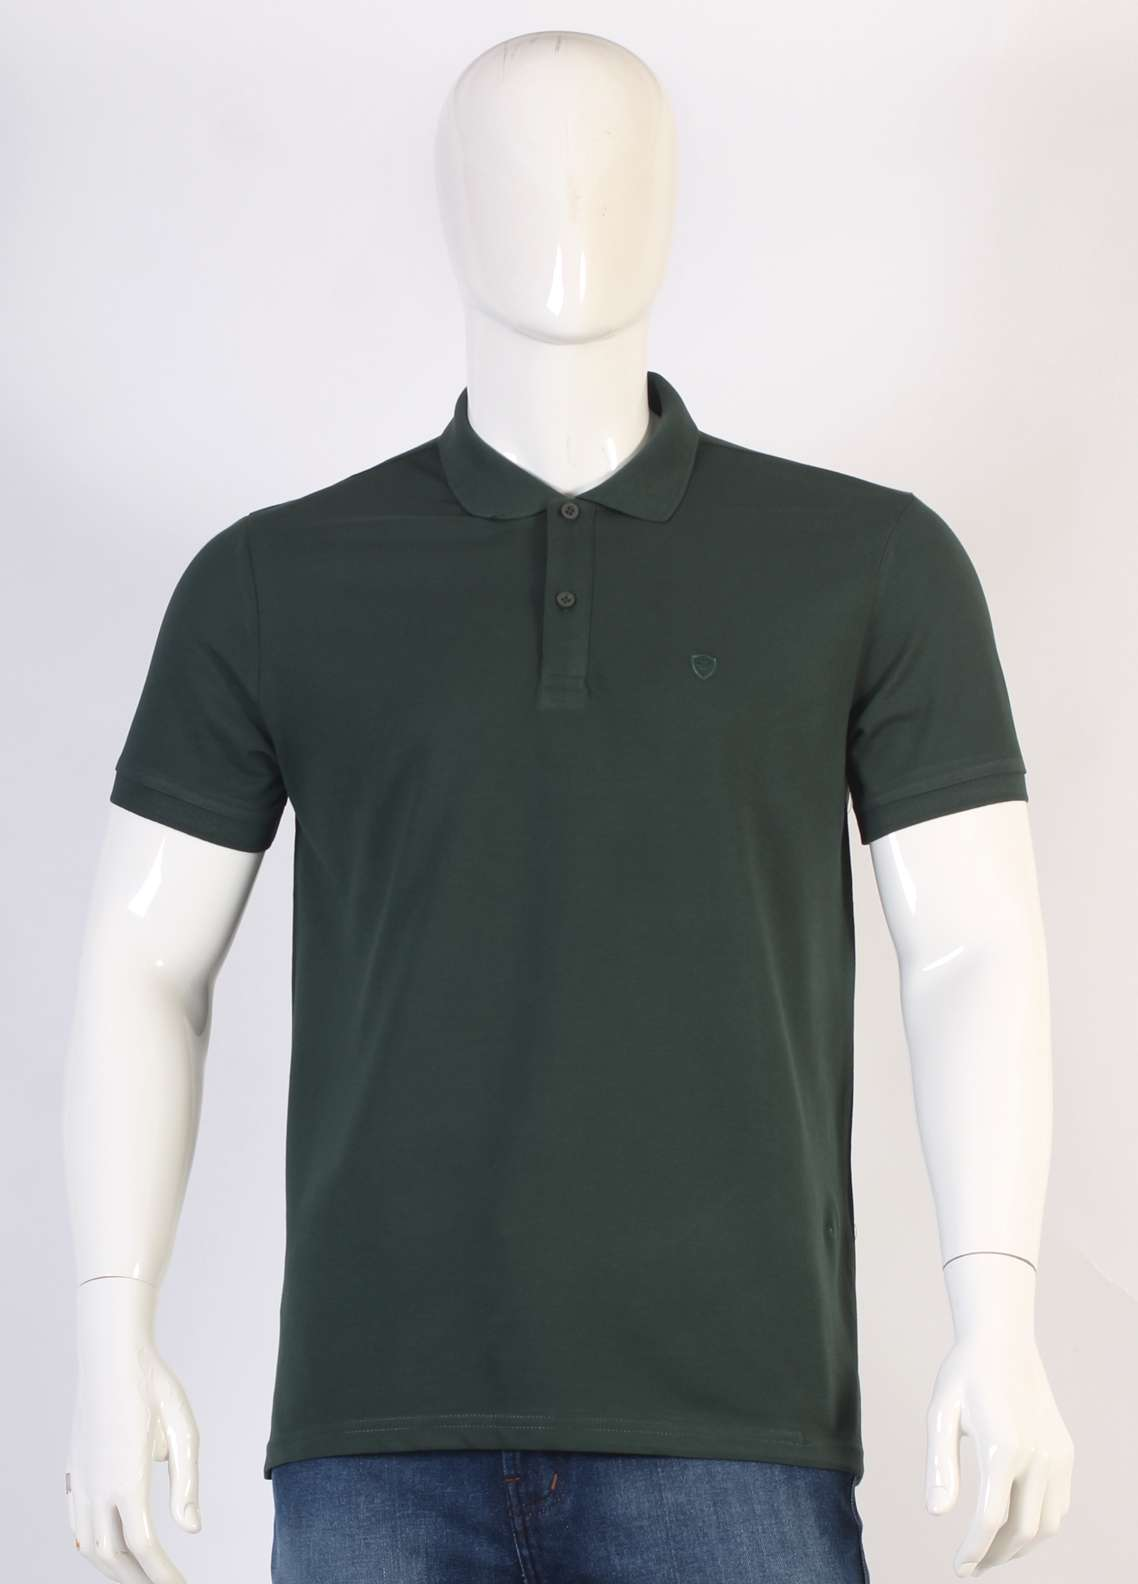 Sanaulla Exclusive Range Jersey Polo Men T-Shirts - Green TKM18S V-6